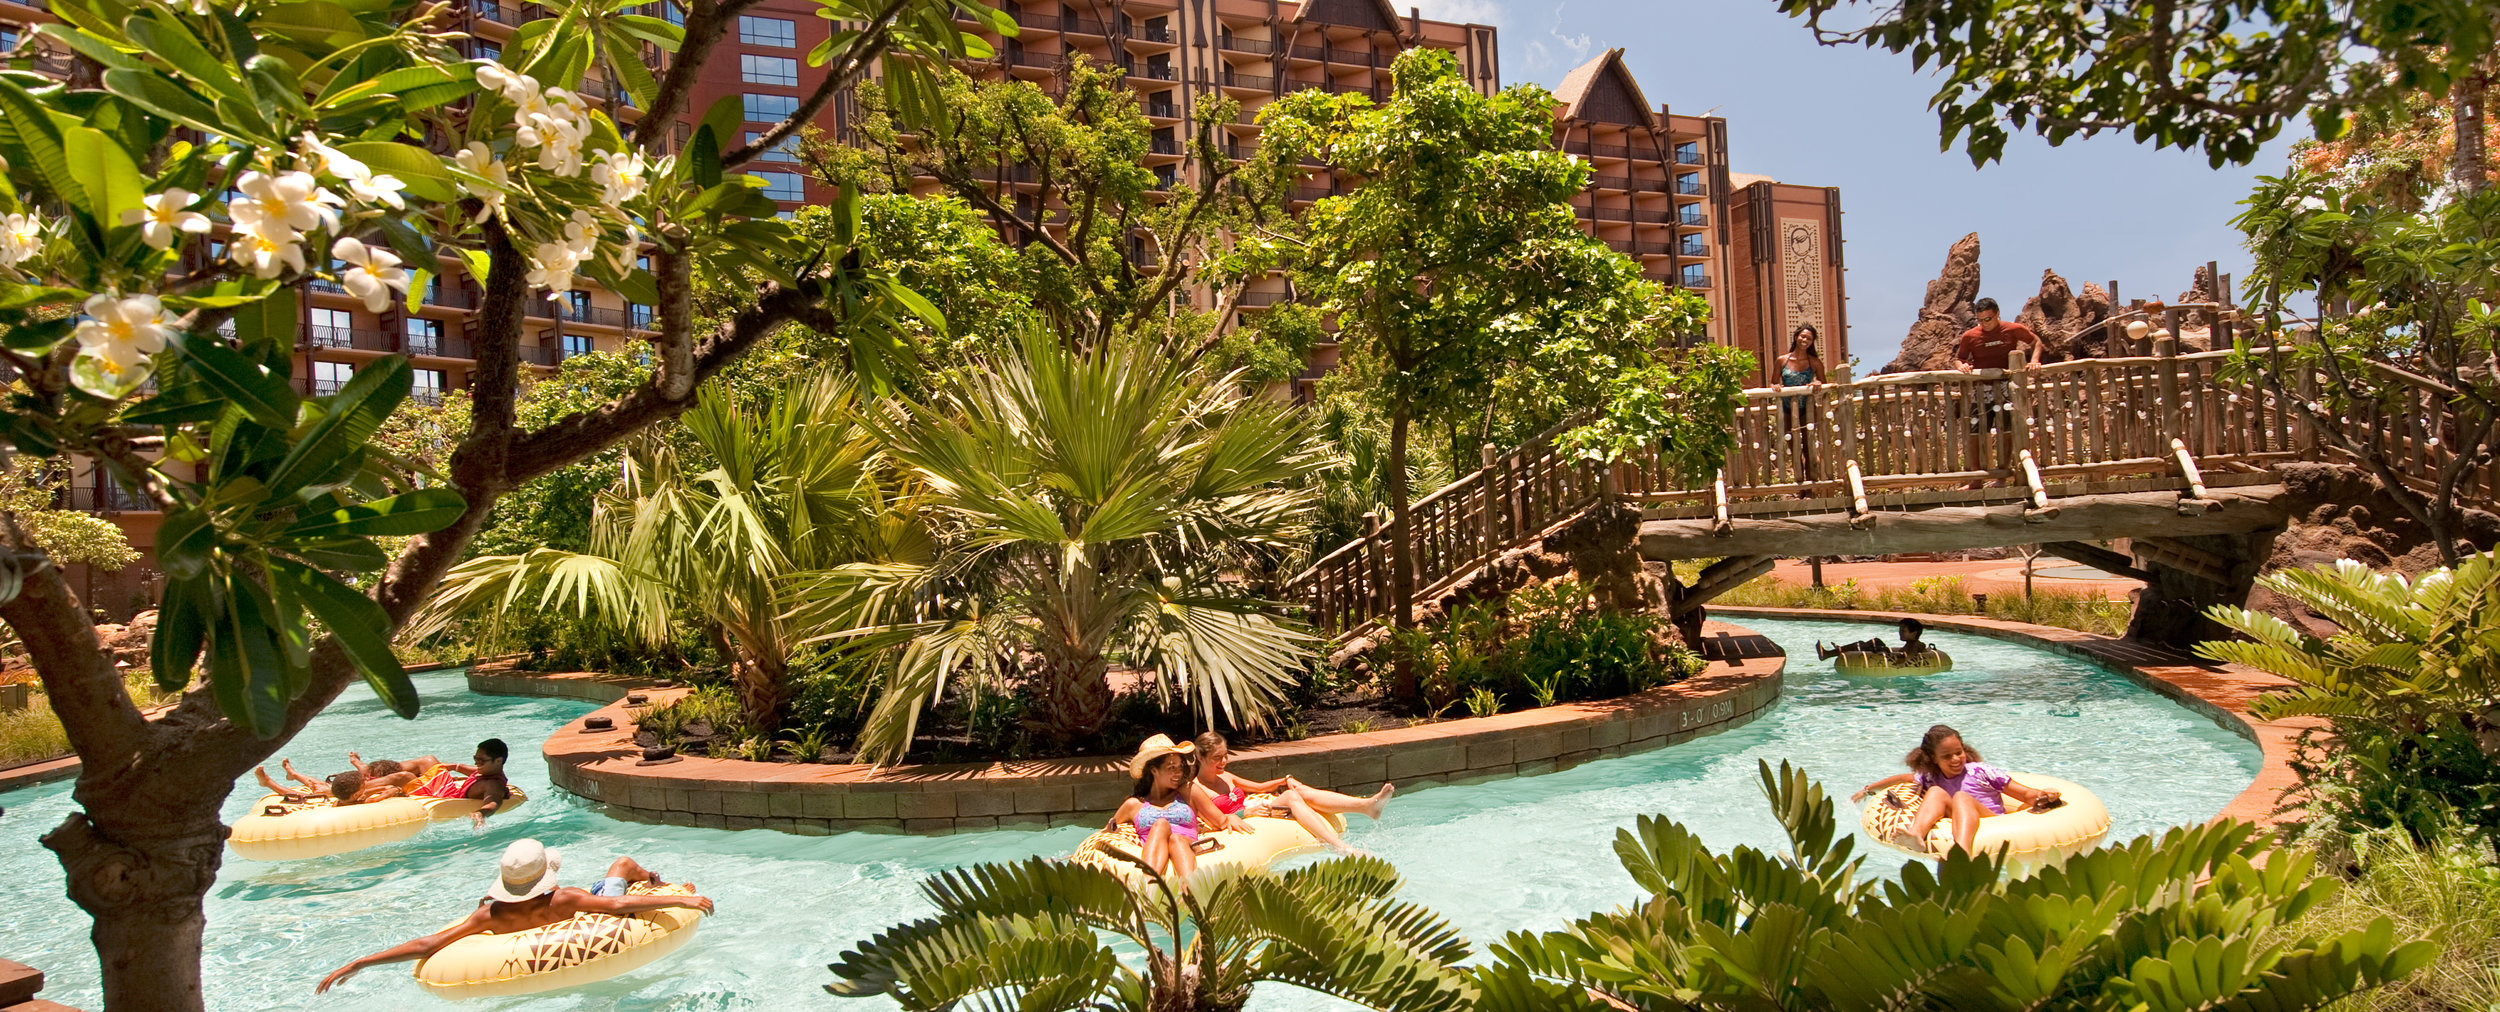 aulani-pool-area-girls-tubing-on-waikolohe-valley-lazy-river.jpg